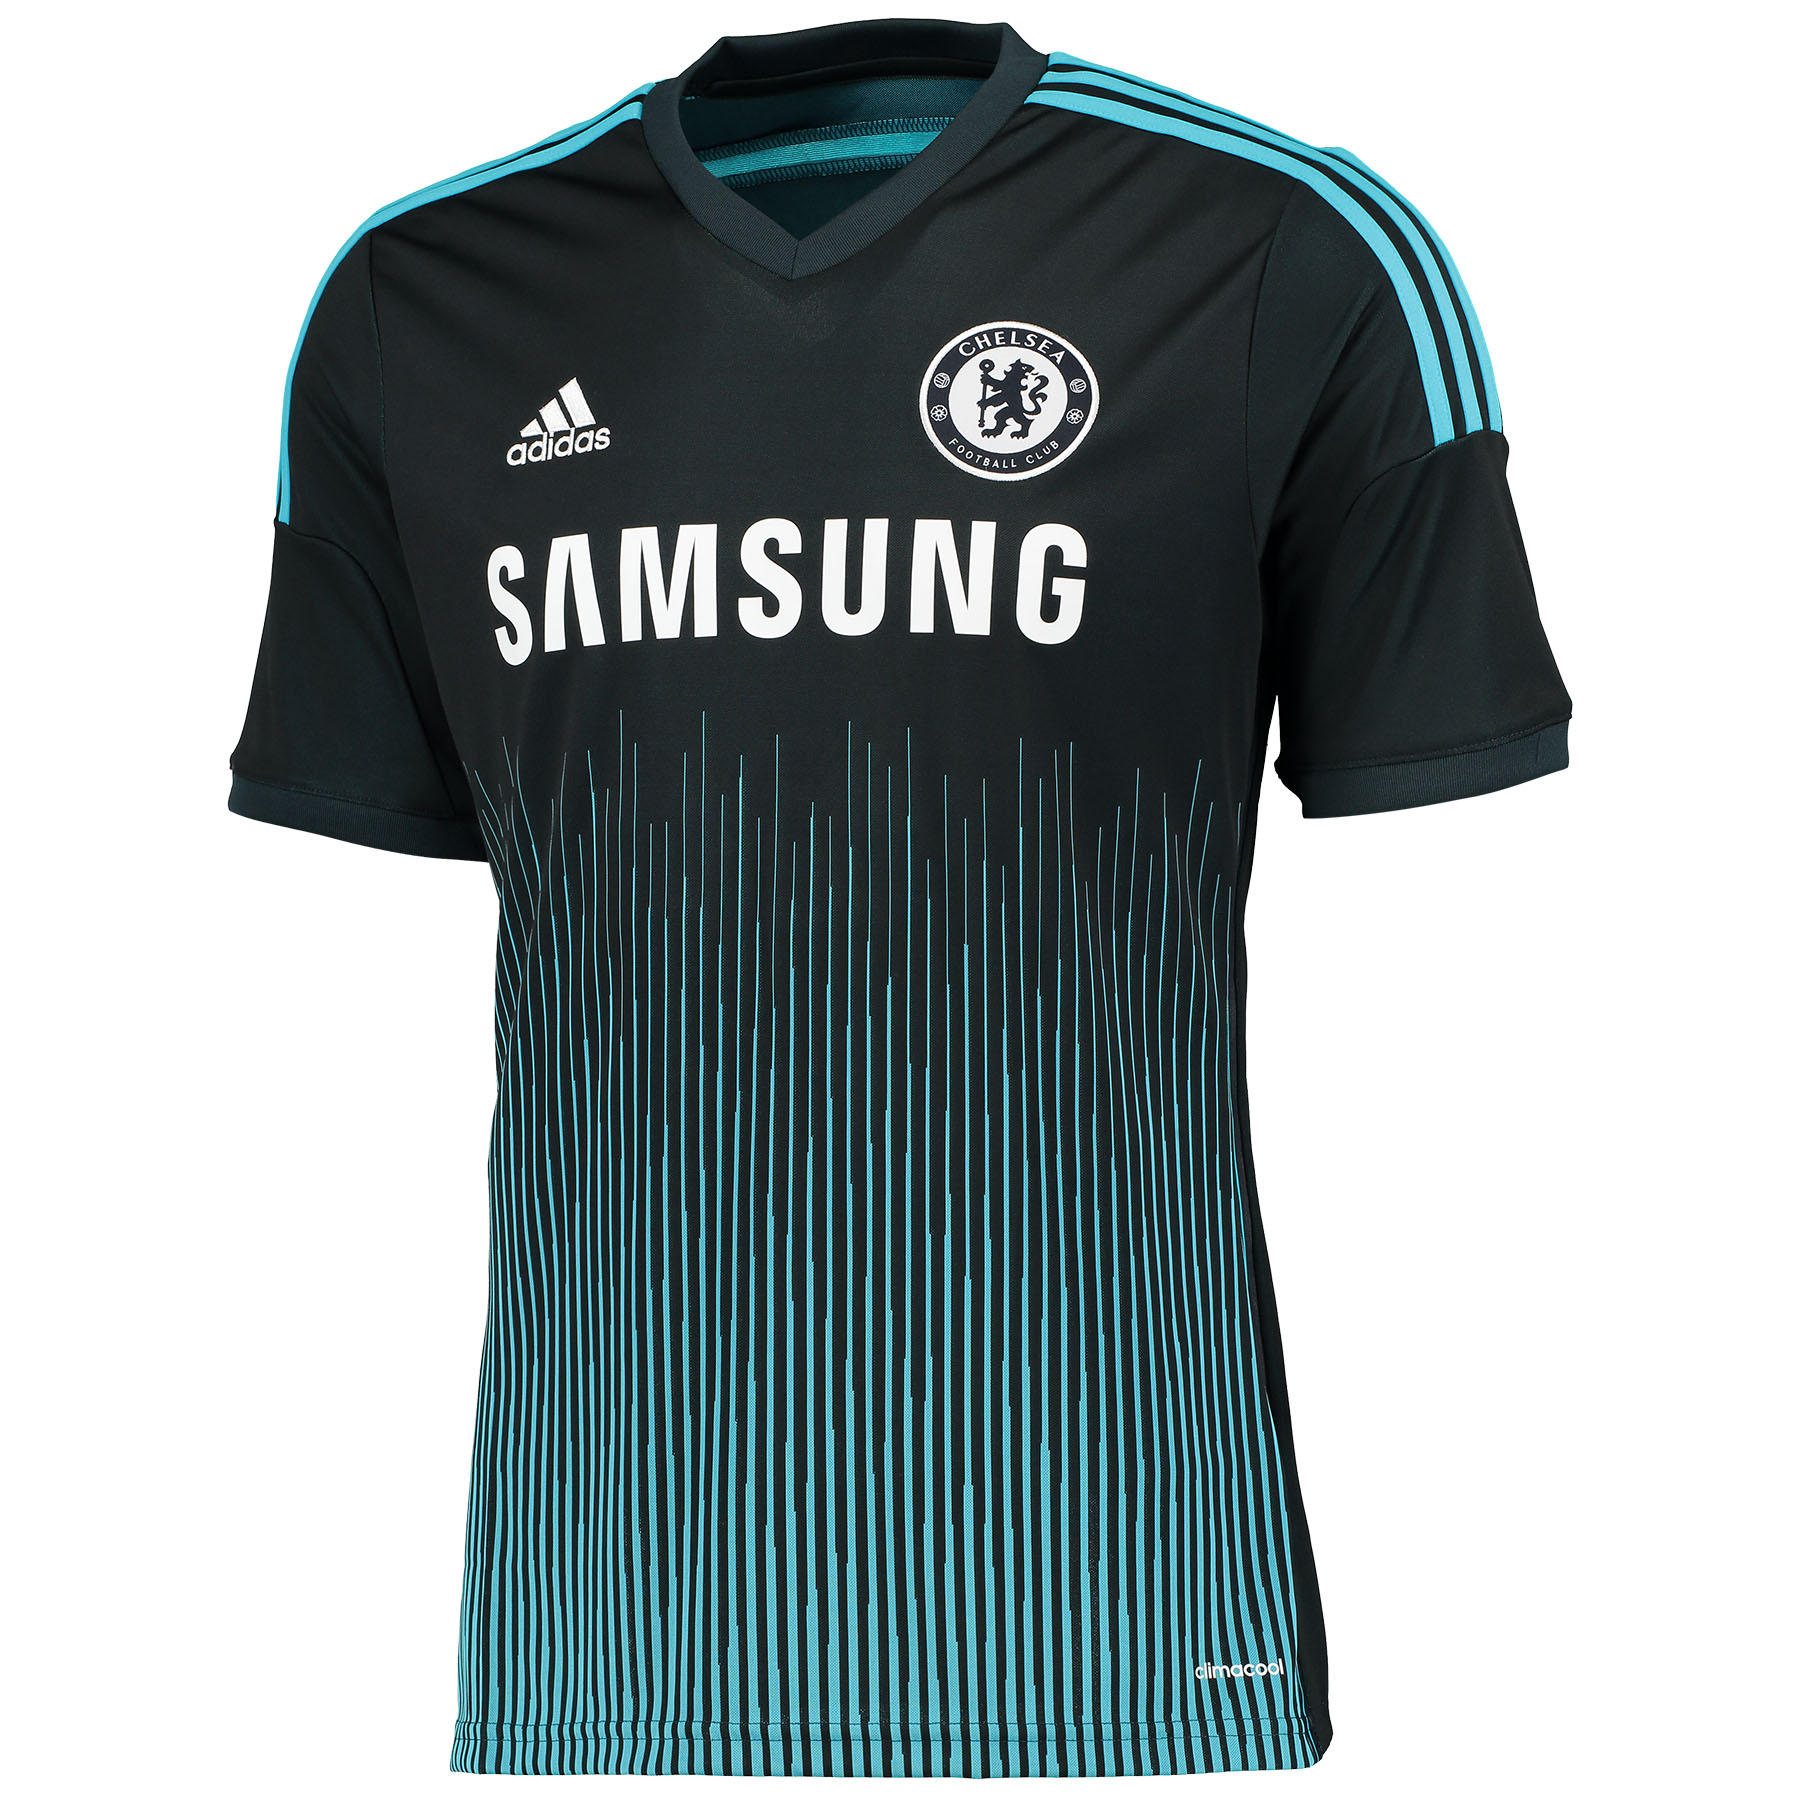 Chelsea Third Shirt 2014/15 Train at your best in this dark blue 2014/15 adidas men's Chelsea Third Shirt which includes the latest adidas technologies such as the moisture-wicking climacool® material to keep you cool and dry as Chelsea lights up the pitch.   Styled with an engineered fabric, adidas stripes on the sleeves and team crest on the left of the chest, Chelsea fans can wear this Third Shirt with pride.   Benefits of this Chelsea Third Shirt: •Ventilated Climacool® keeps you cool and dry as the match heats up •Engineered fabric •adidas three stripe logo